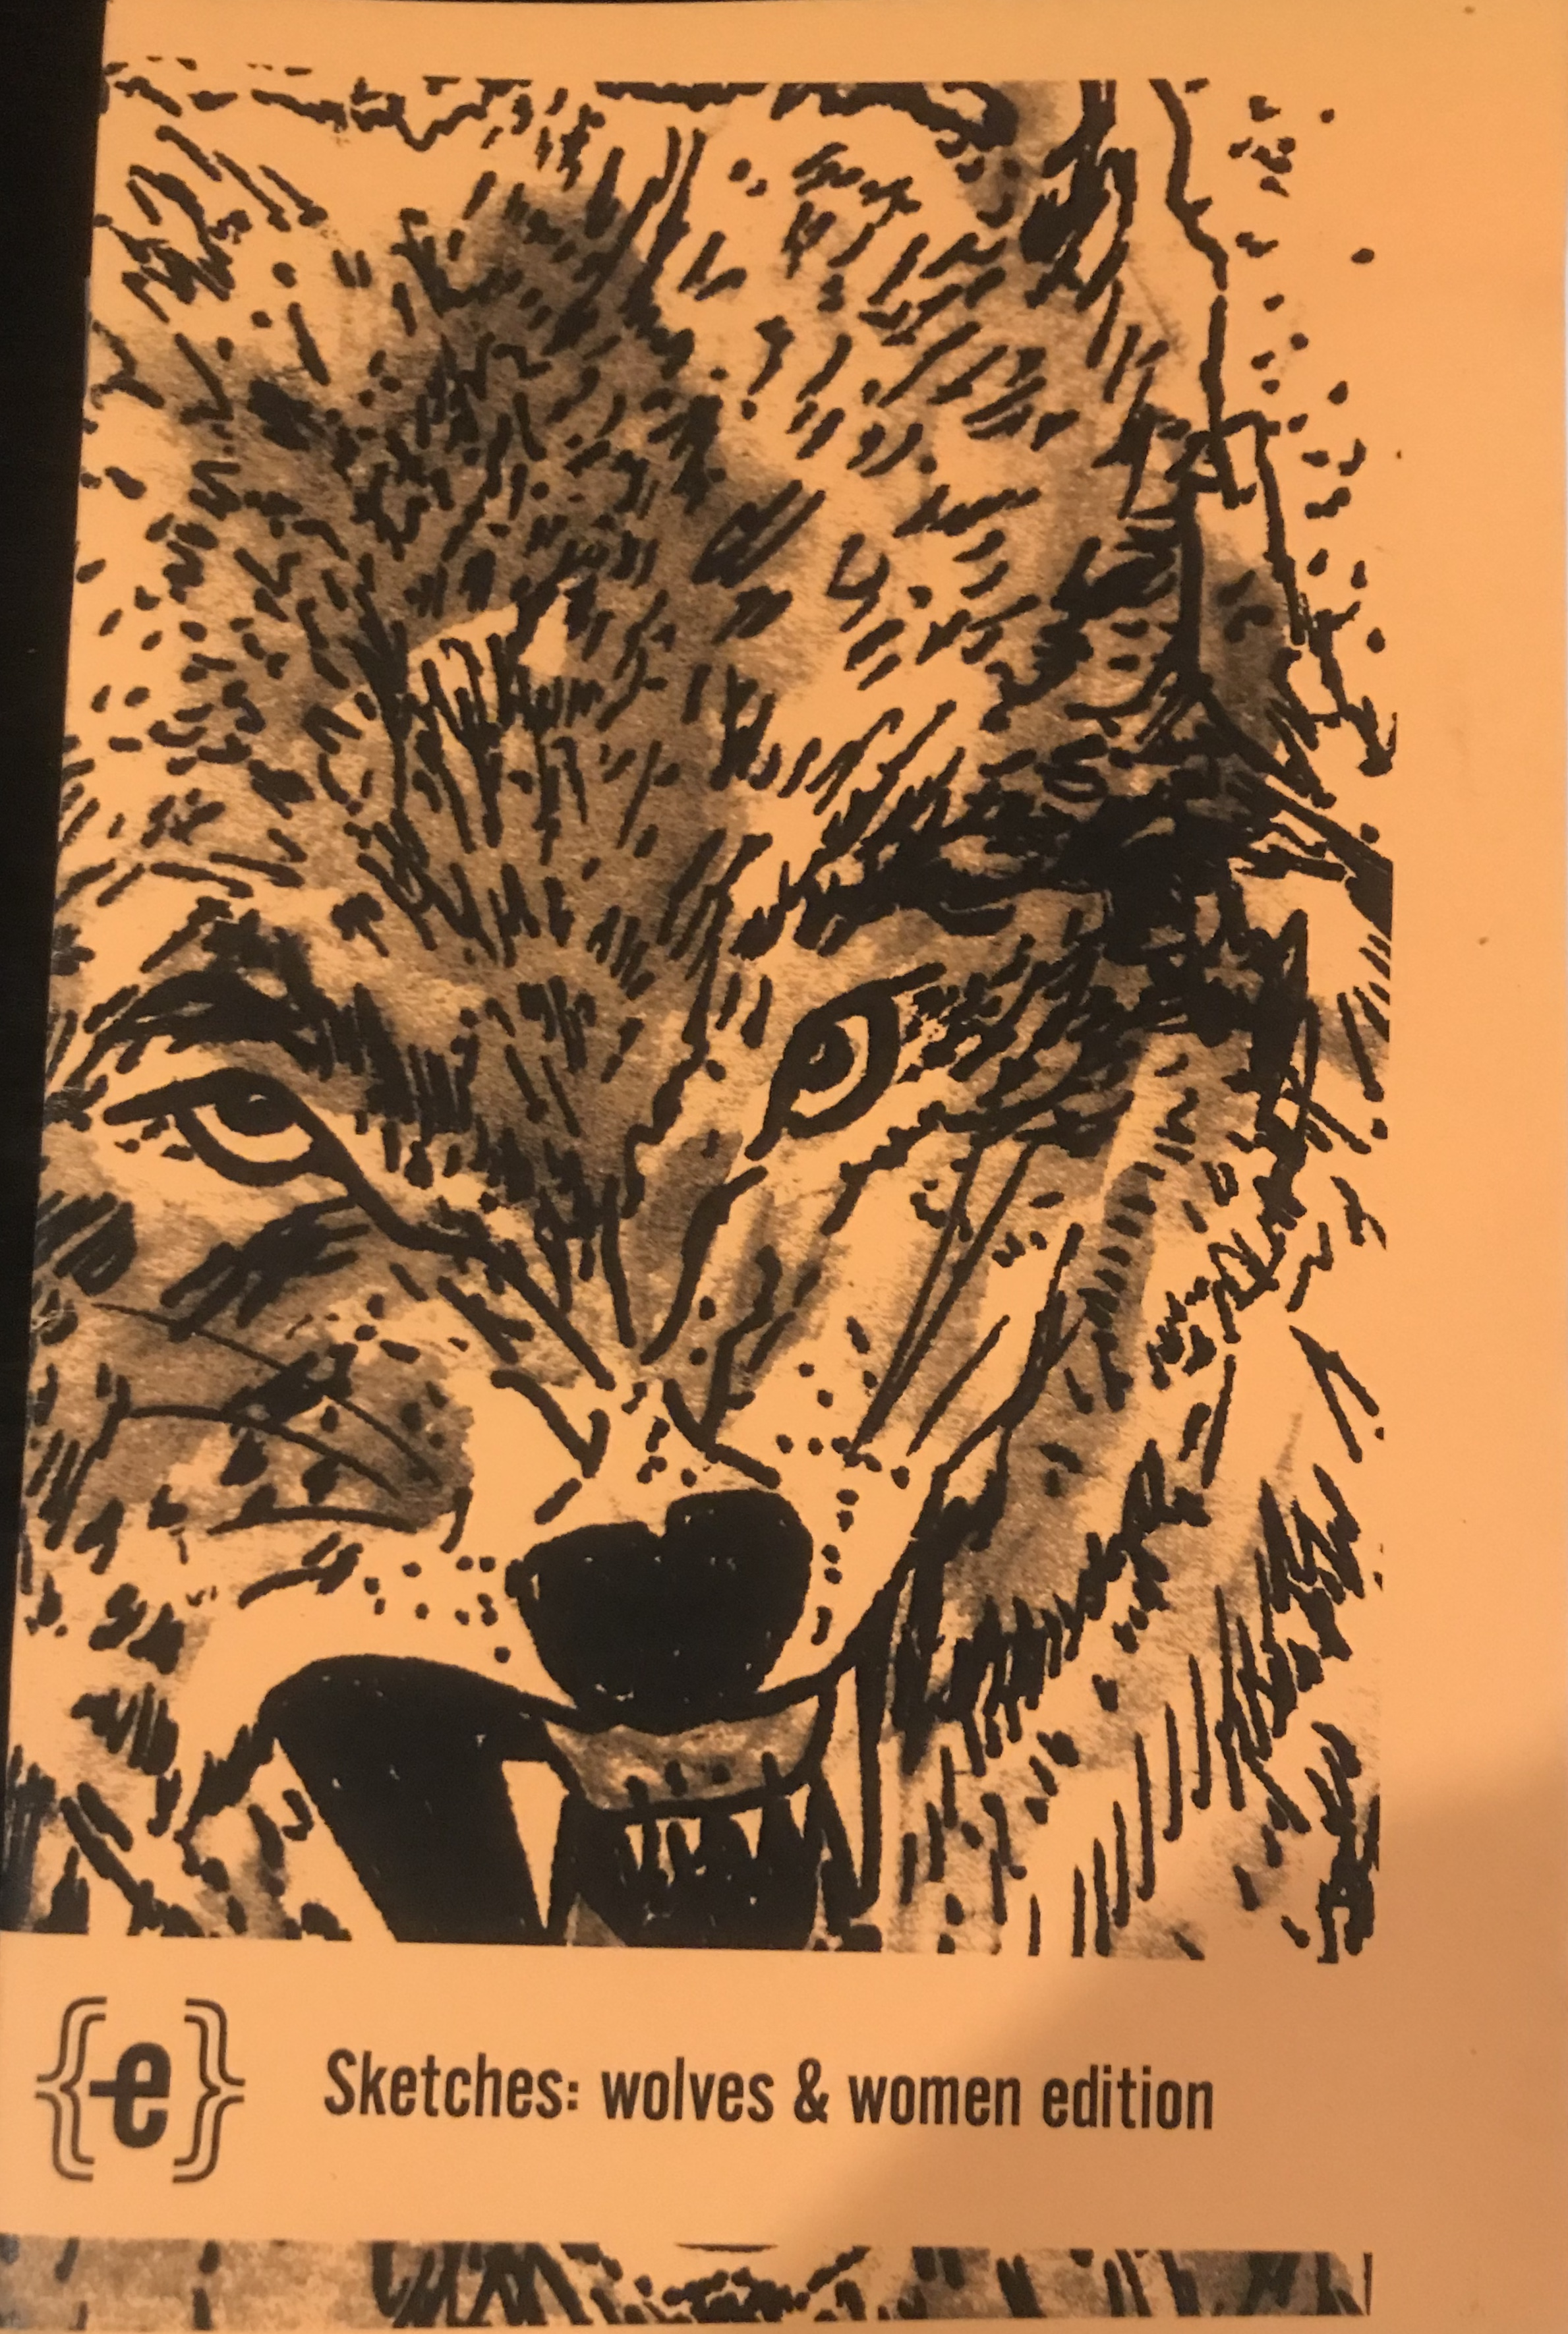 Orange cover with a drawing of a wolf.